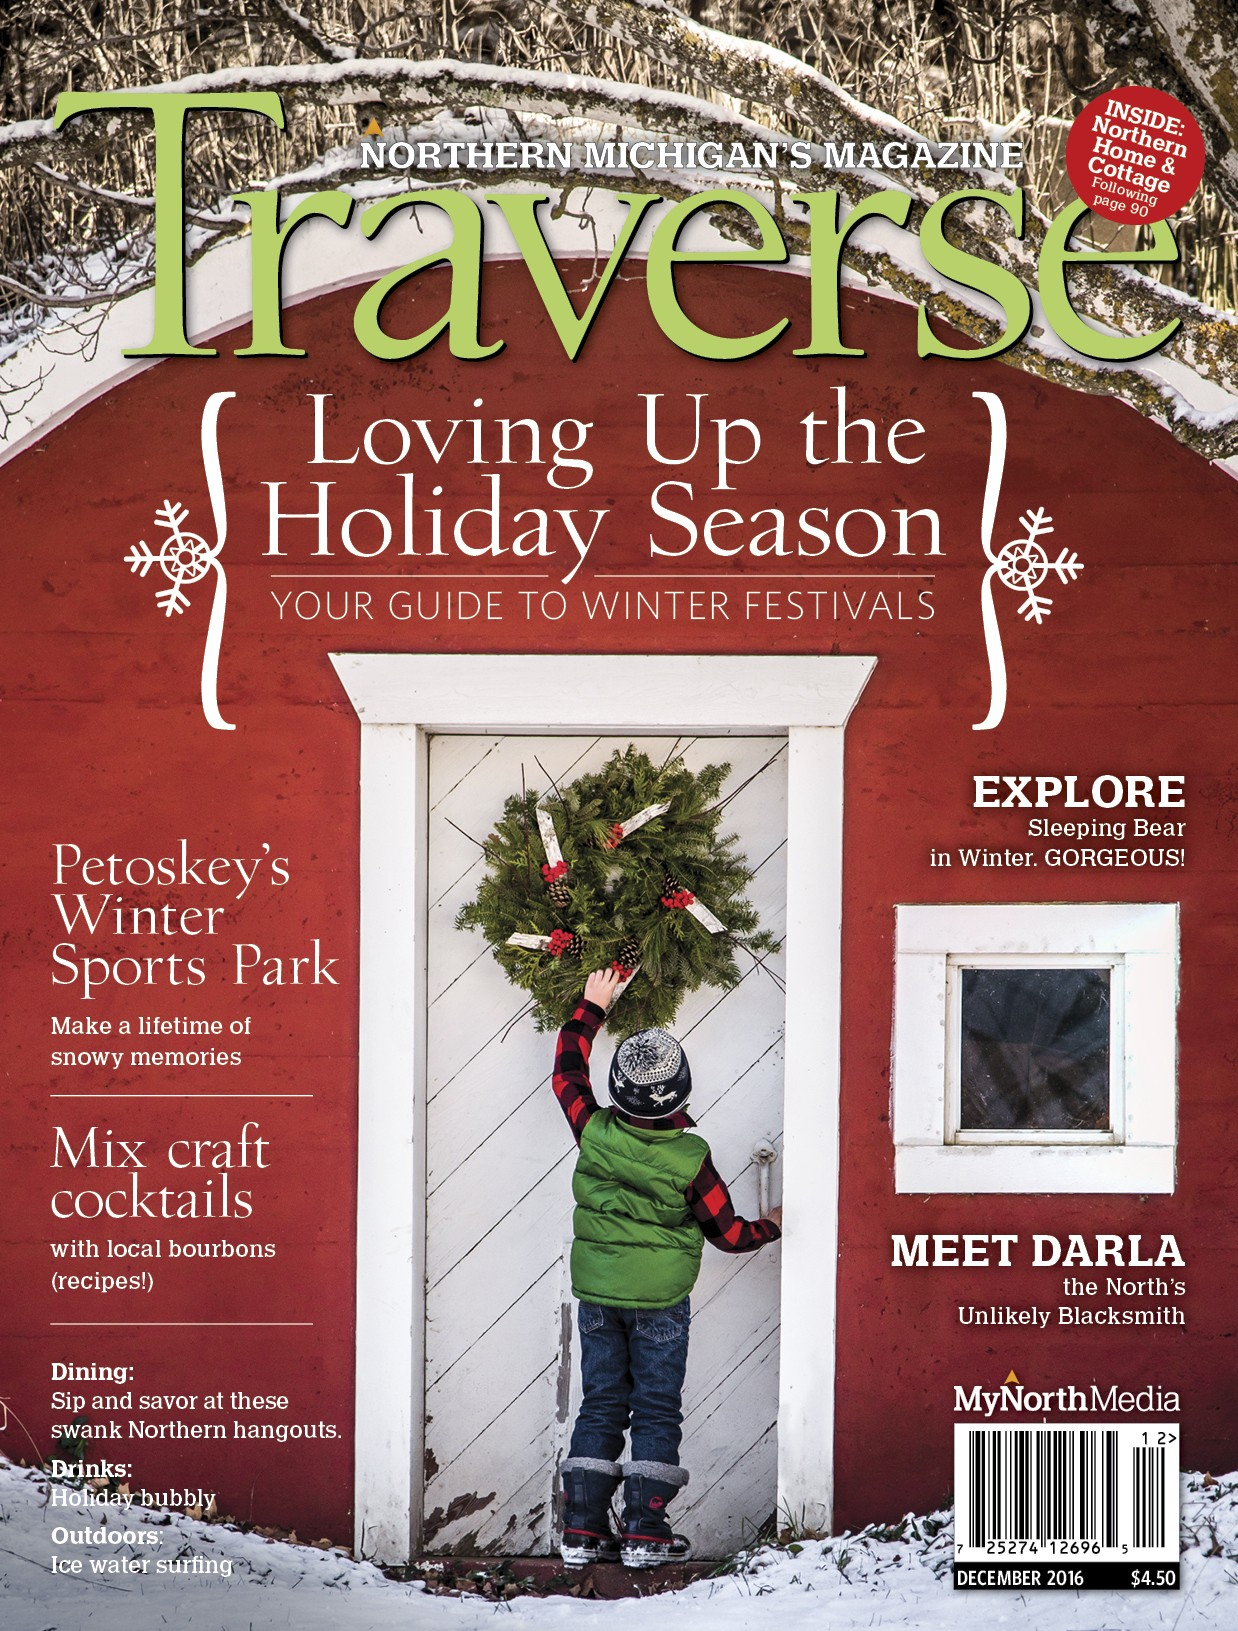 December 2016 Traverse, Northern Michigan's Magazine